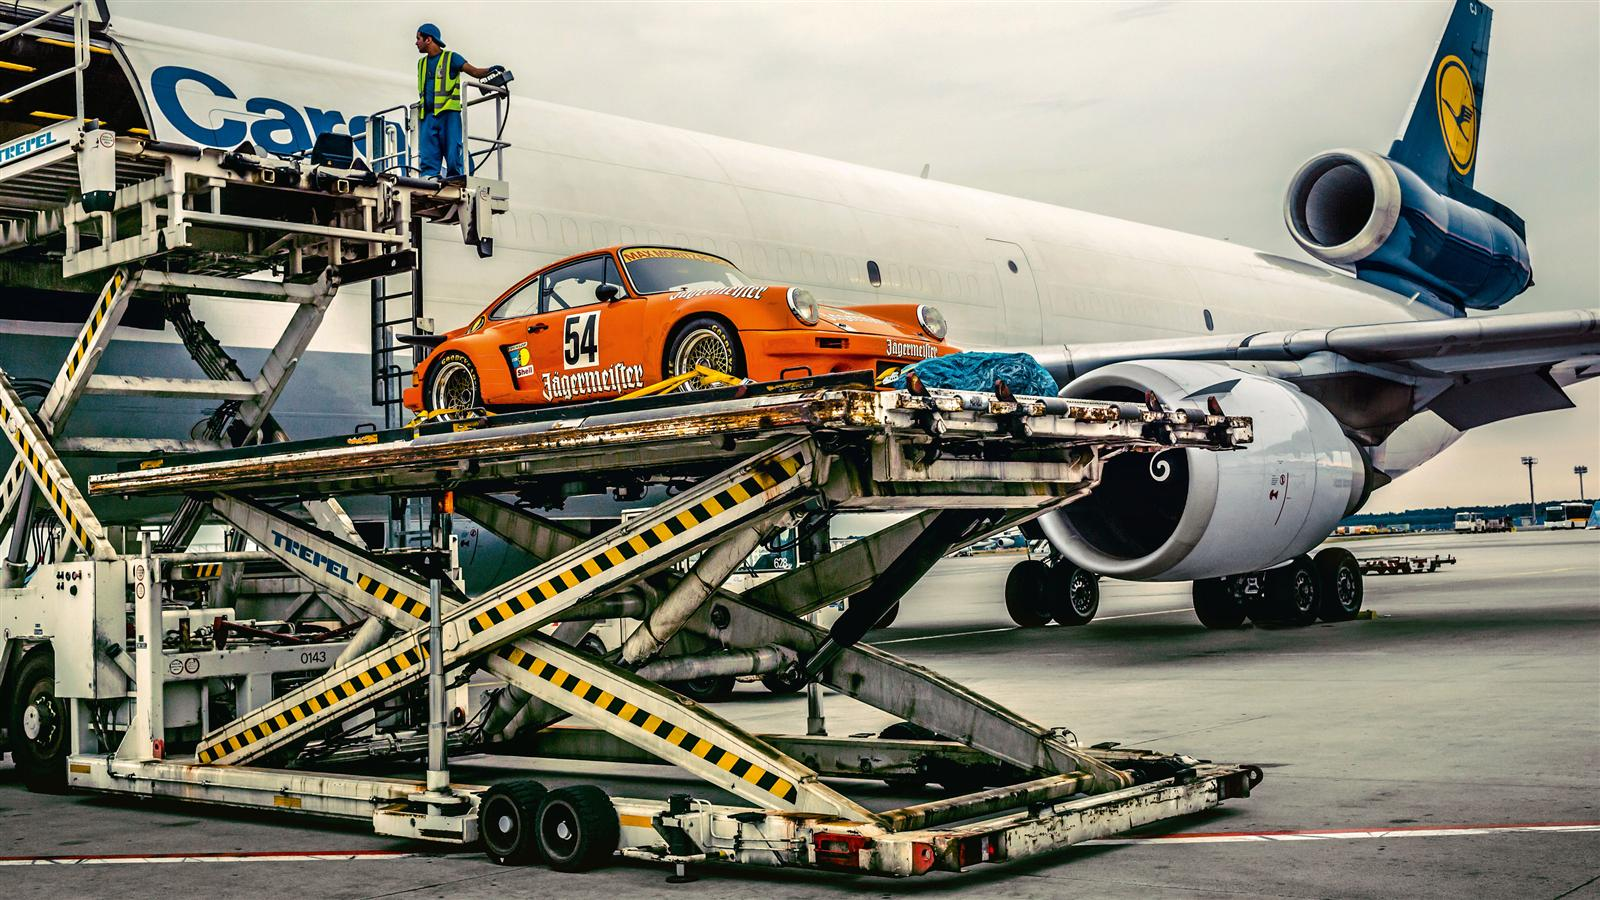 911 RSR from 1974 being unloaded at the airport